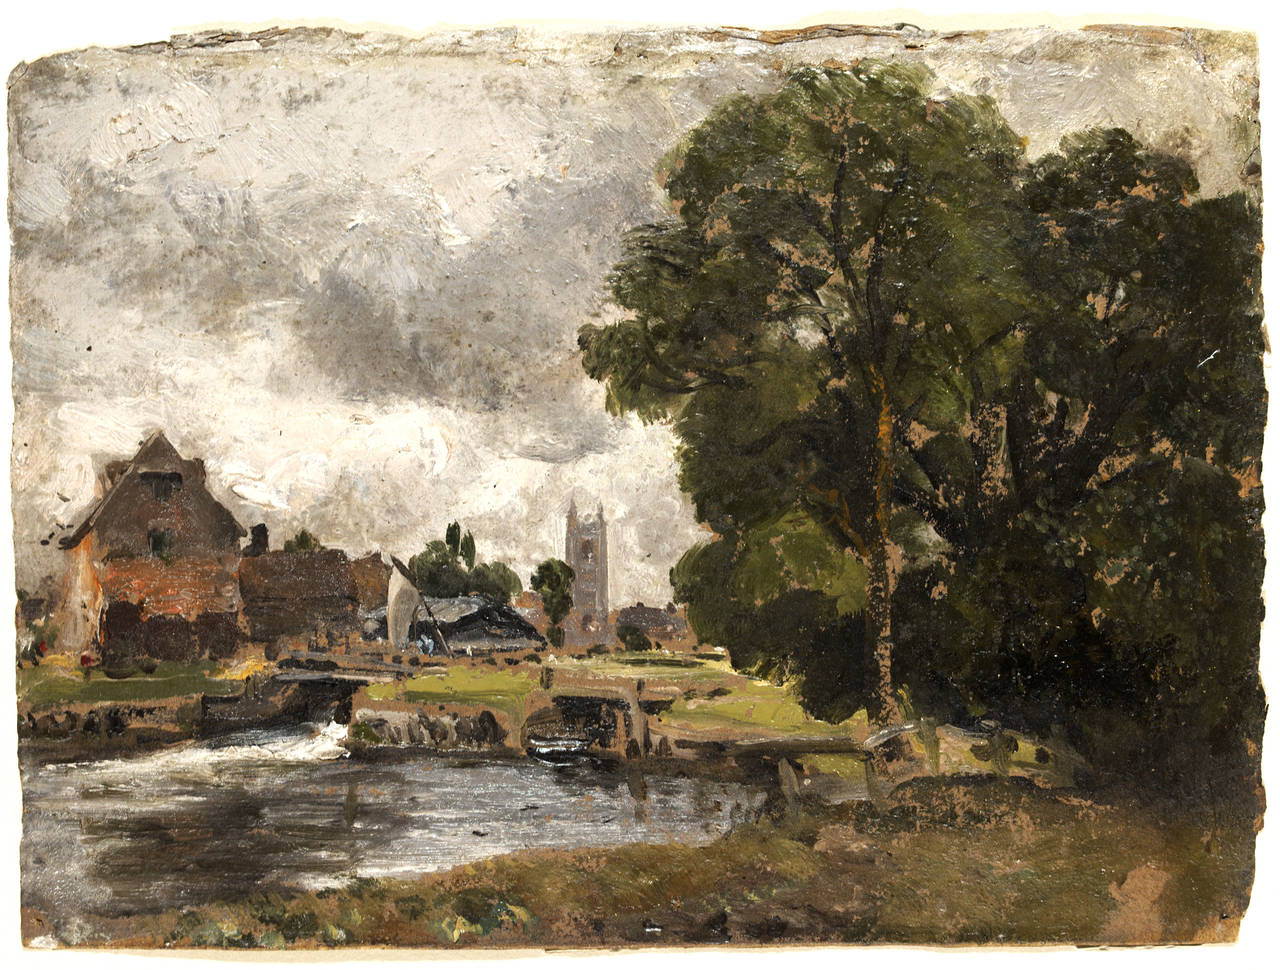 constable mill pond; oil paint on paper